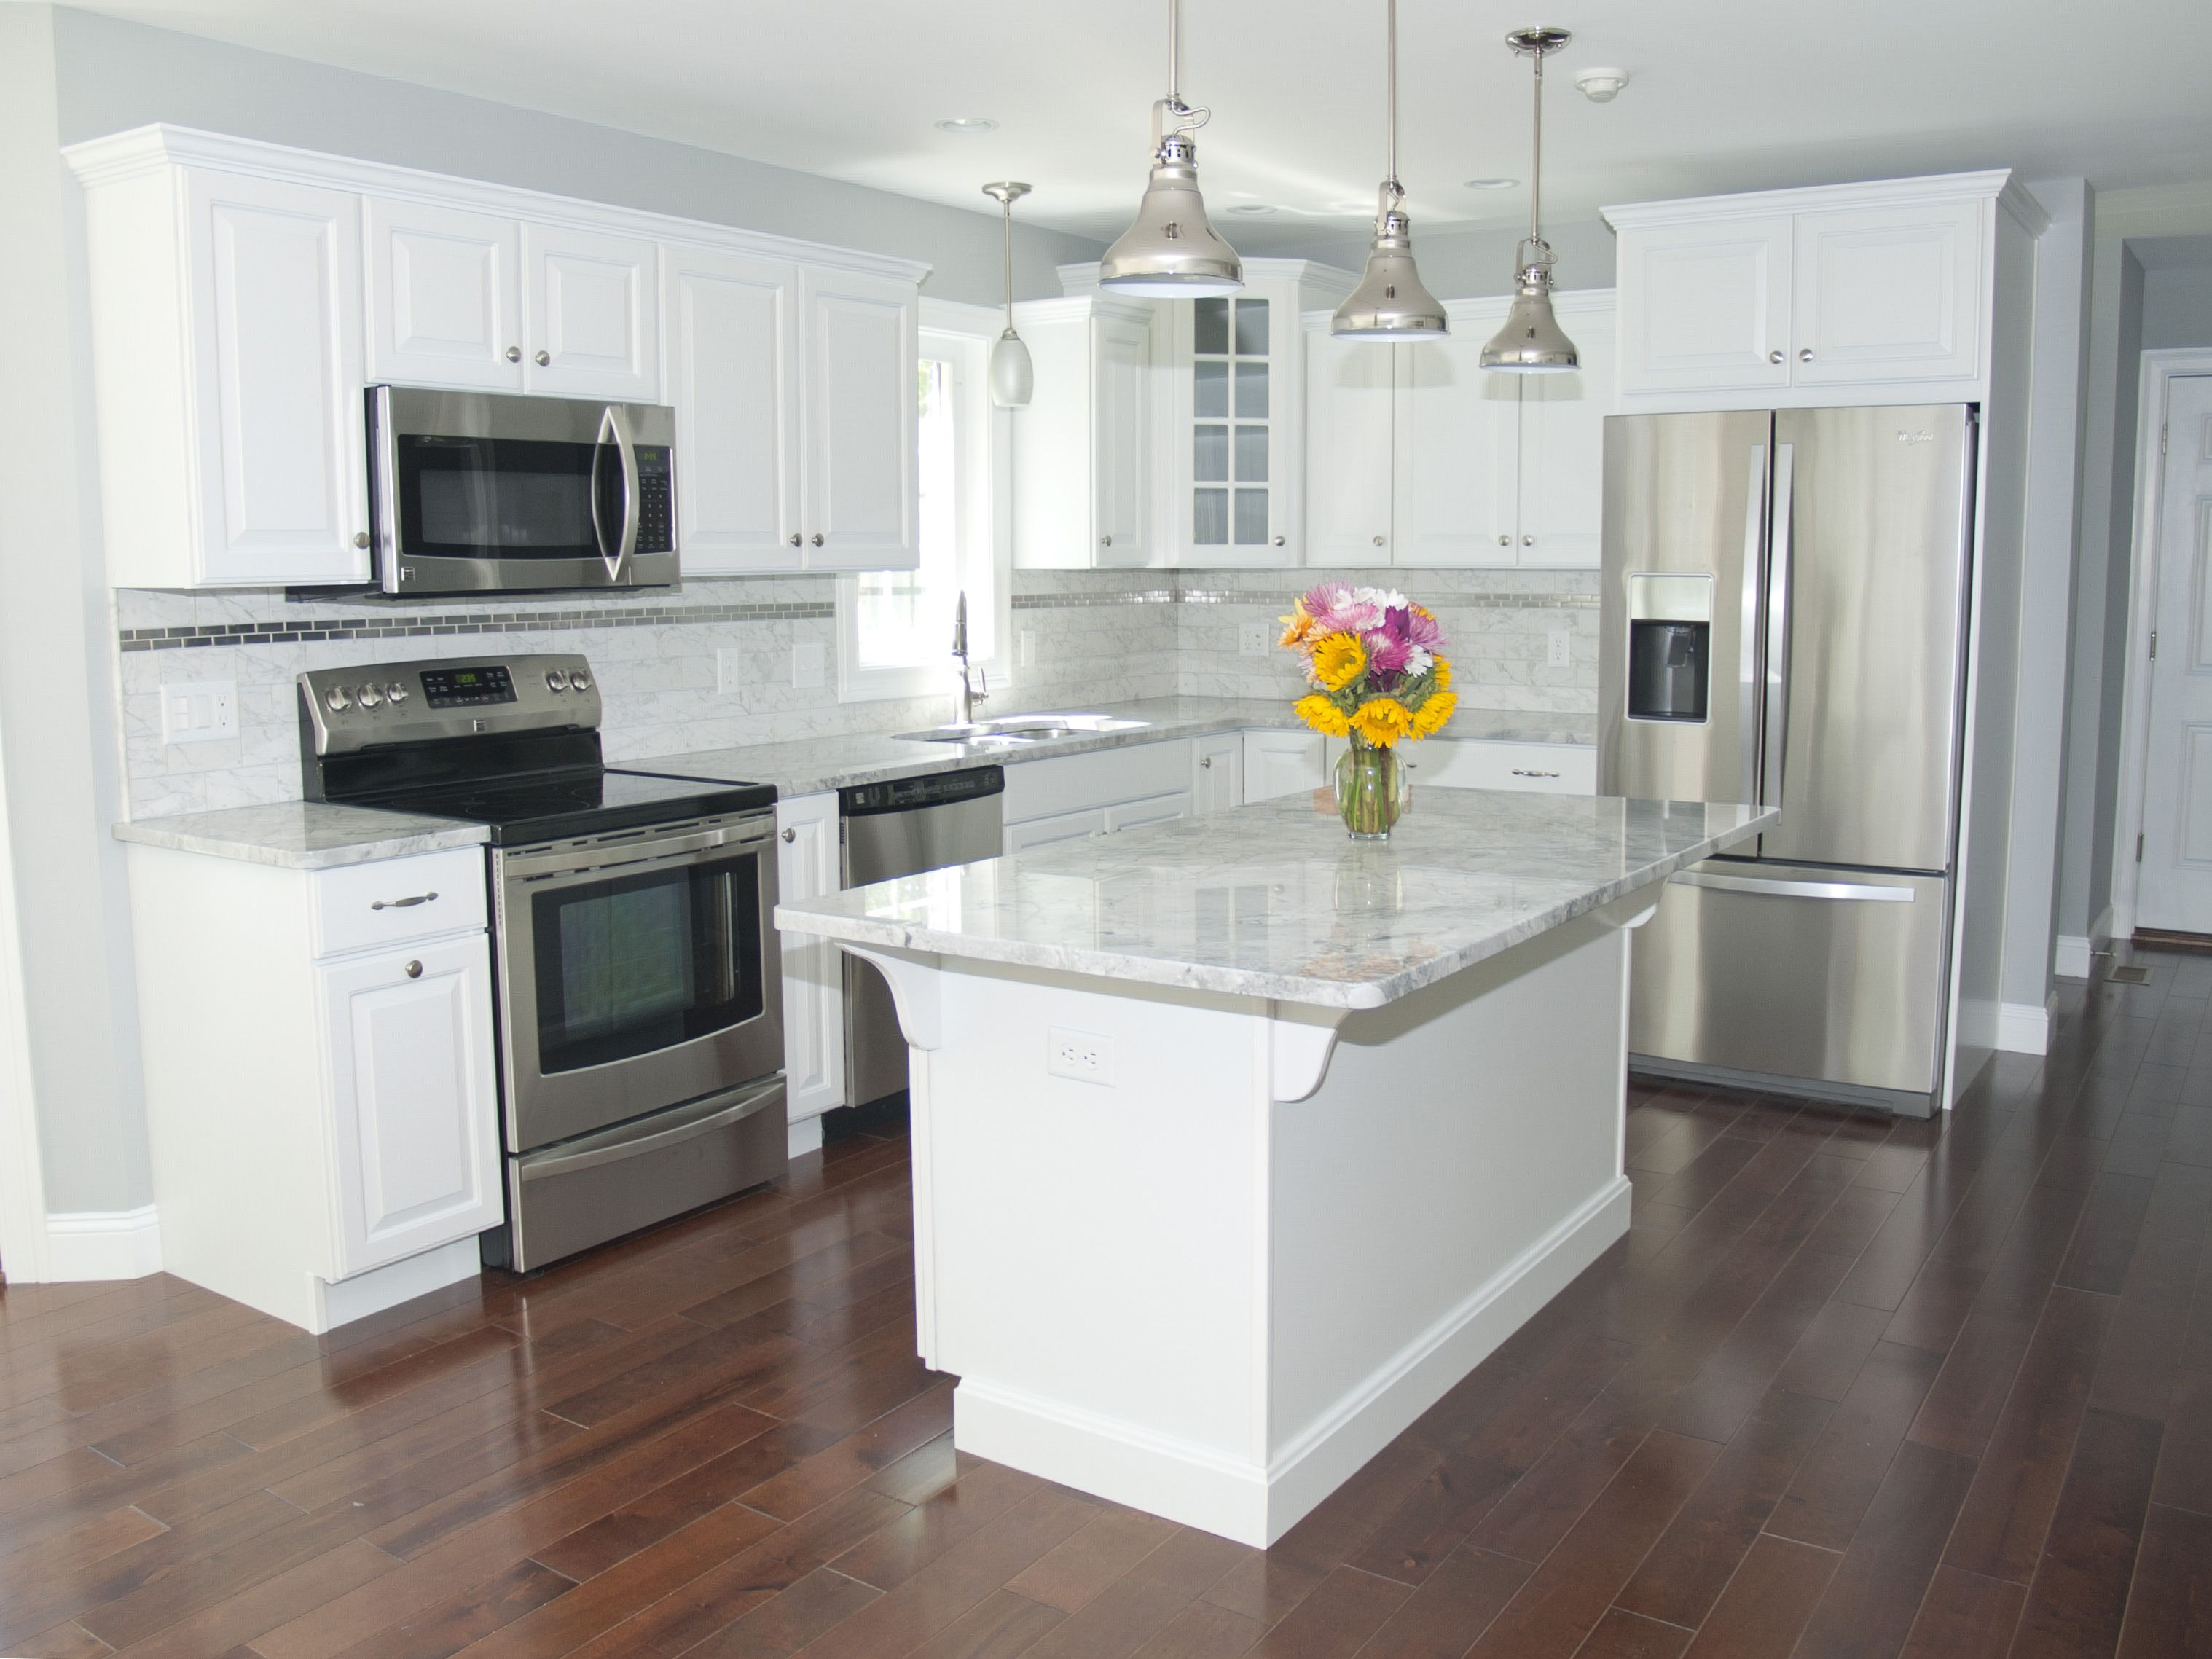 Gorgeous modern kitchen with white cabinets stainless steel appliances stainless pendant - Modern kitchen with white appliances ...